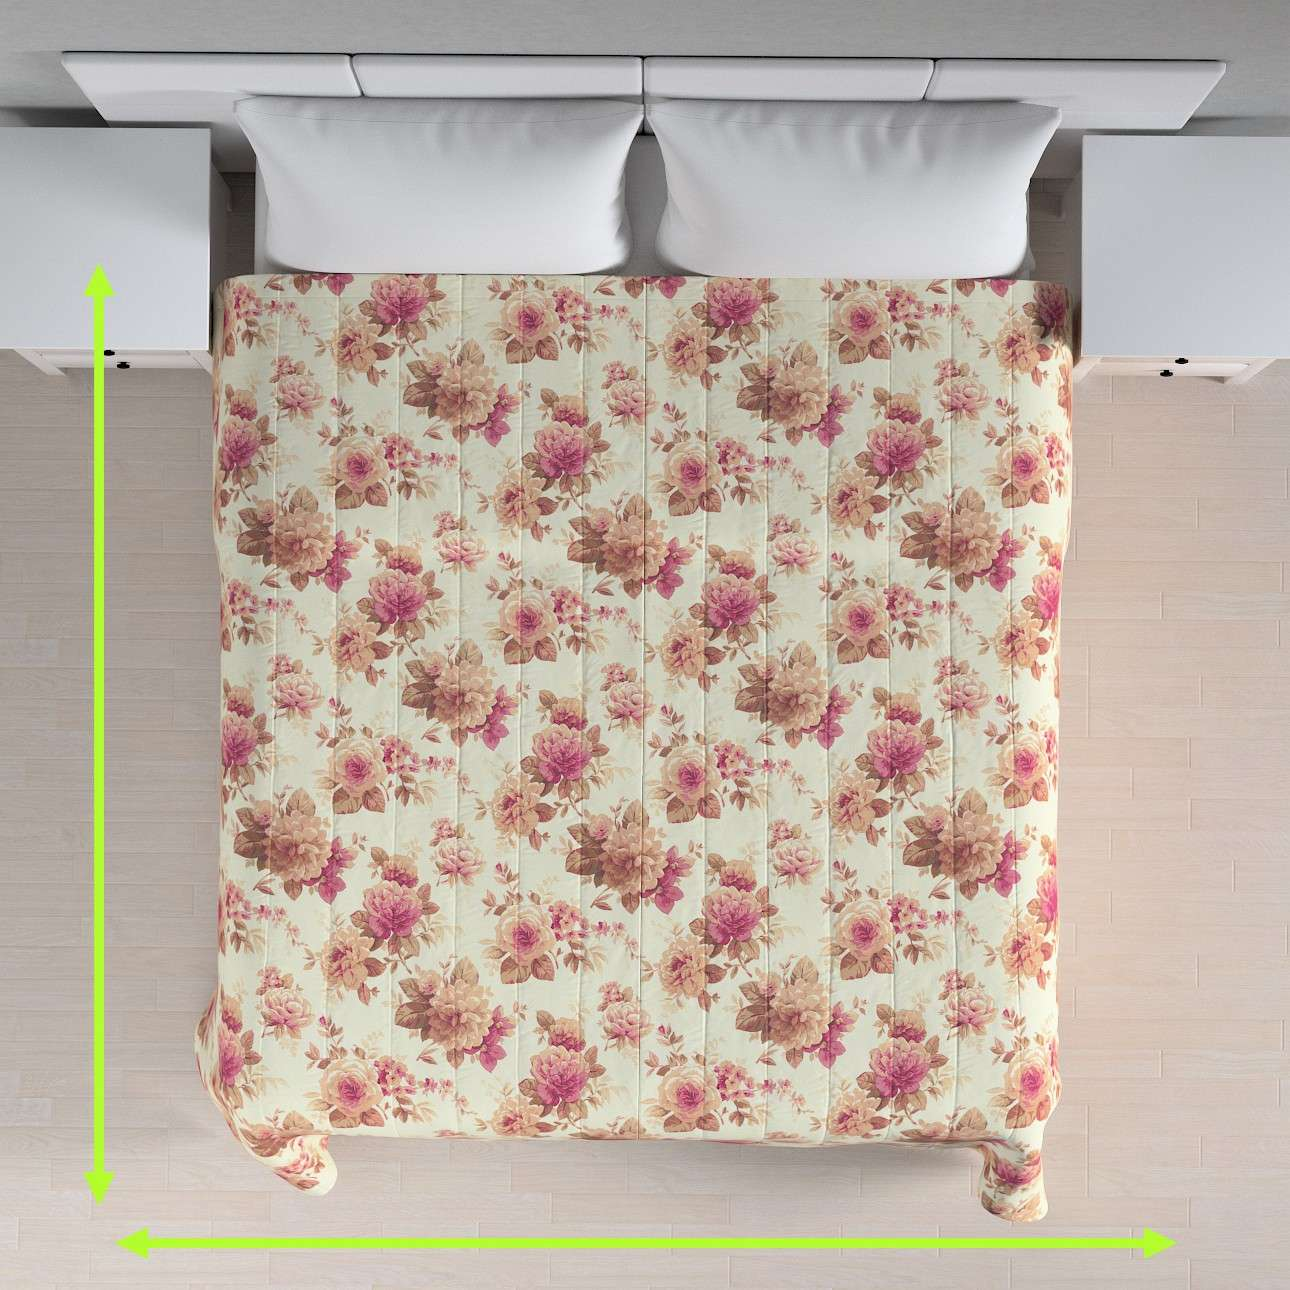 Quilted throw (vertical quilt pattern) in collection Mirella, fabric: 141-06